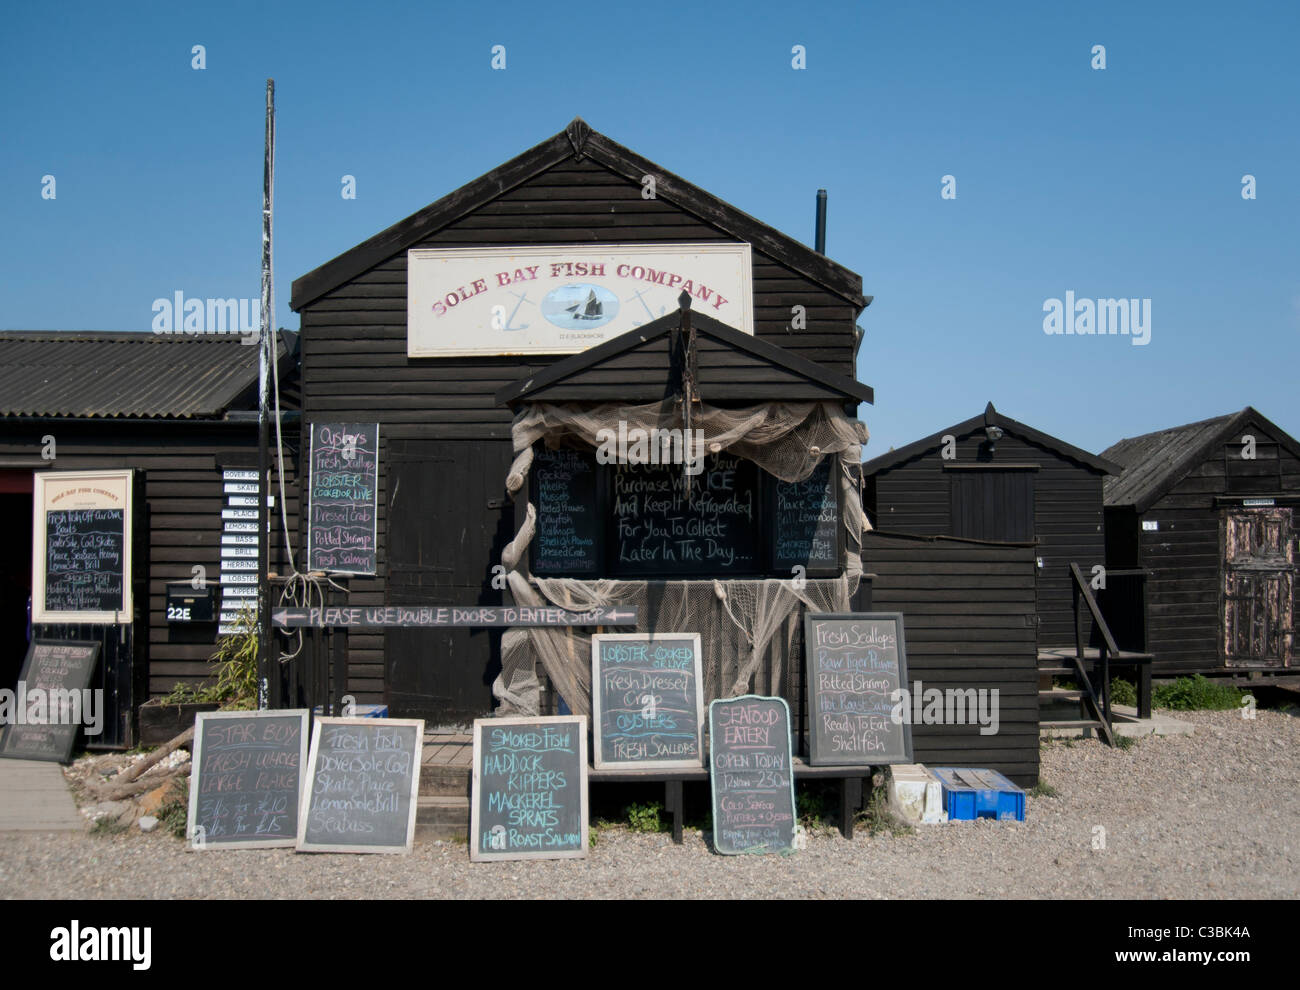 Sole Bay fish Company Fish shop at Southwold Harbour Suffolk England UK. Wooden shed with many signs advertising - Stock Image